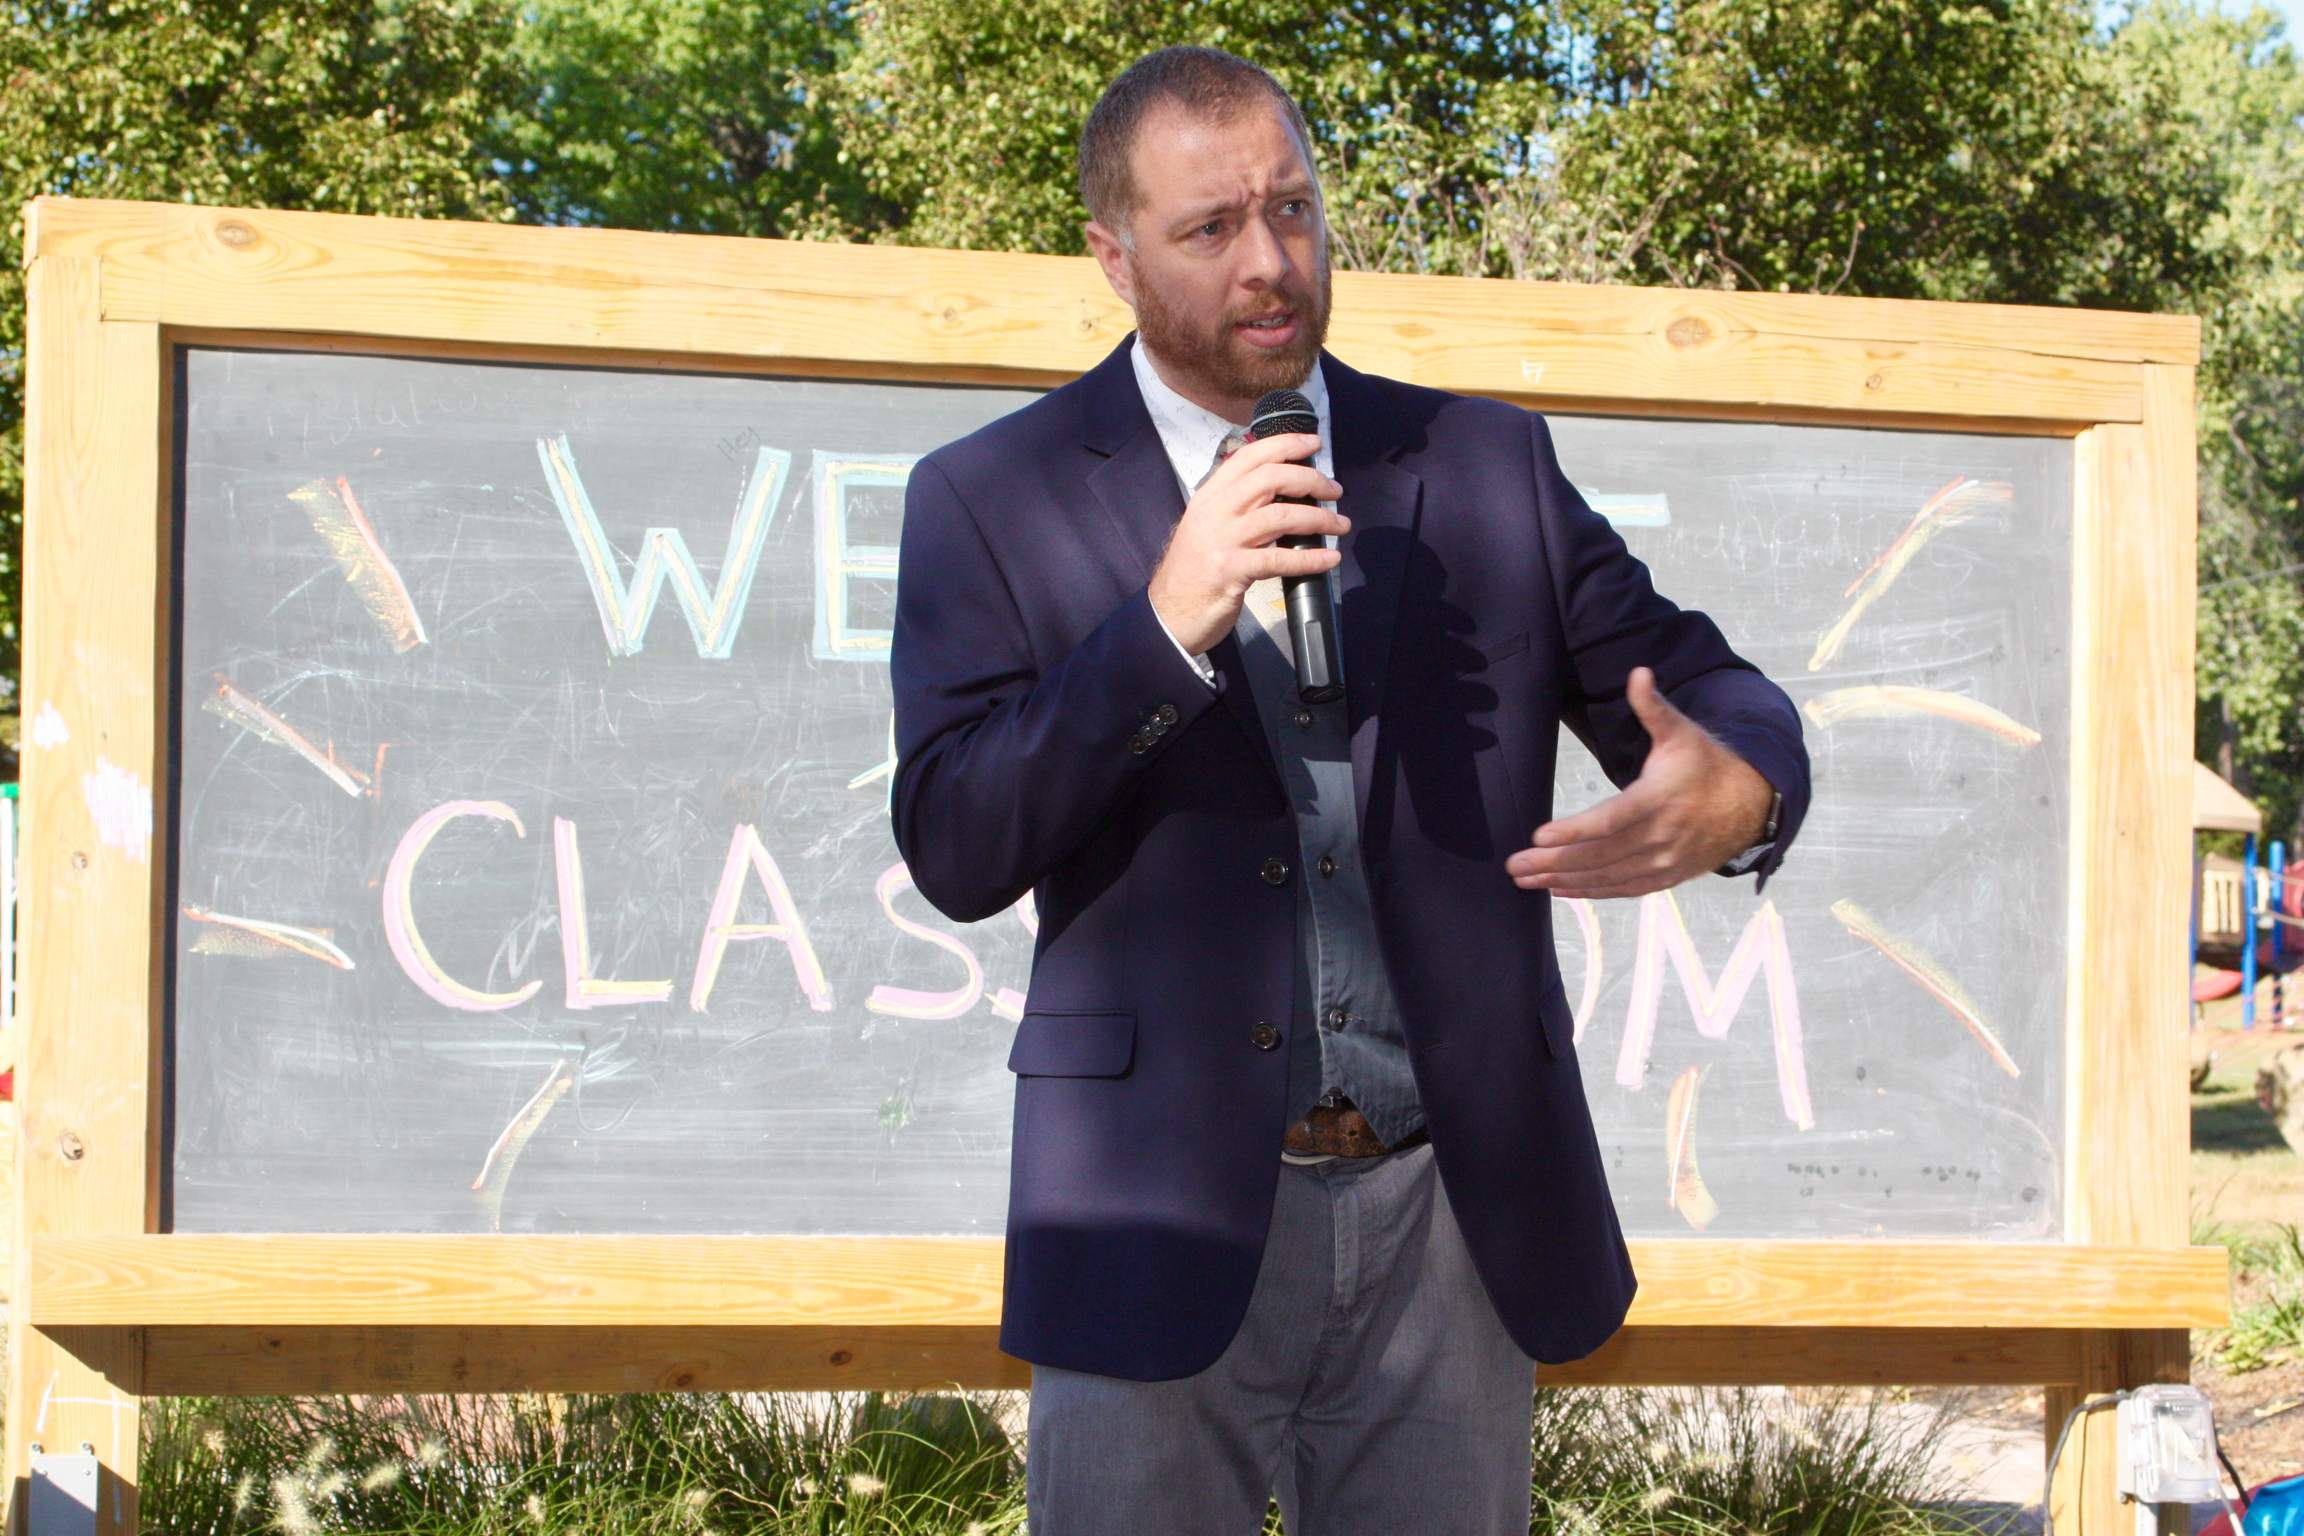 olc-grand-opening-frye-speaking-auth-photo